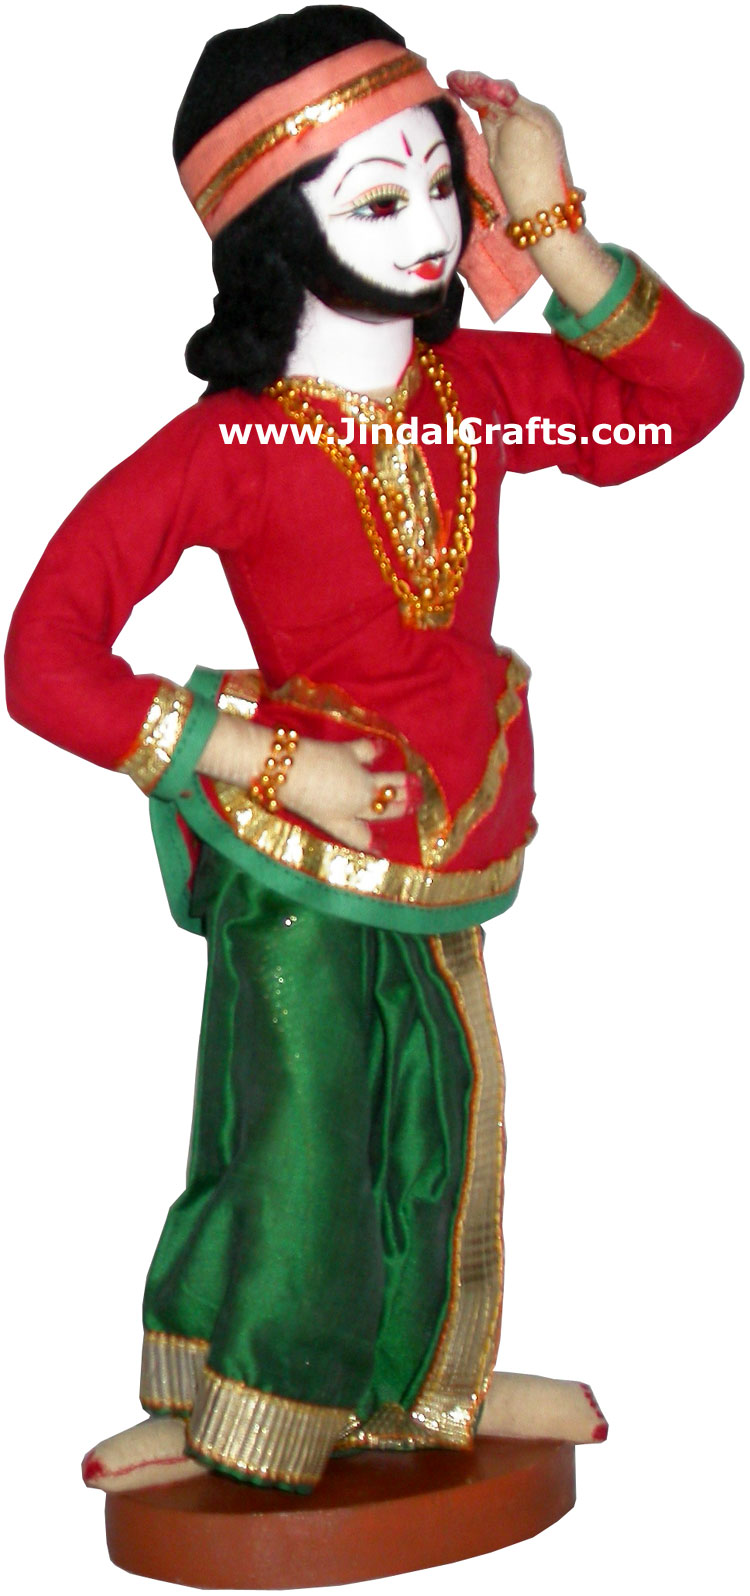 Handmade Traditional Indian Collectible Costume Doll Home Decor Artifact Figure